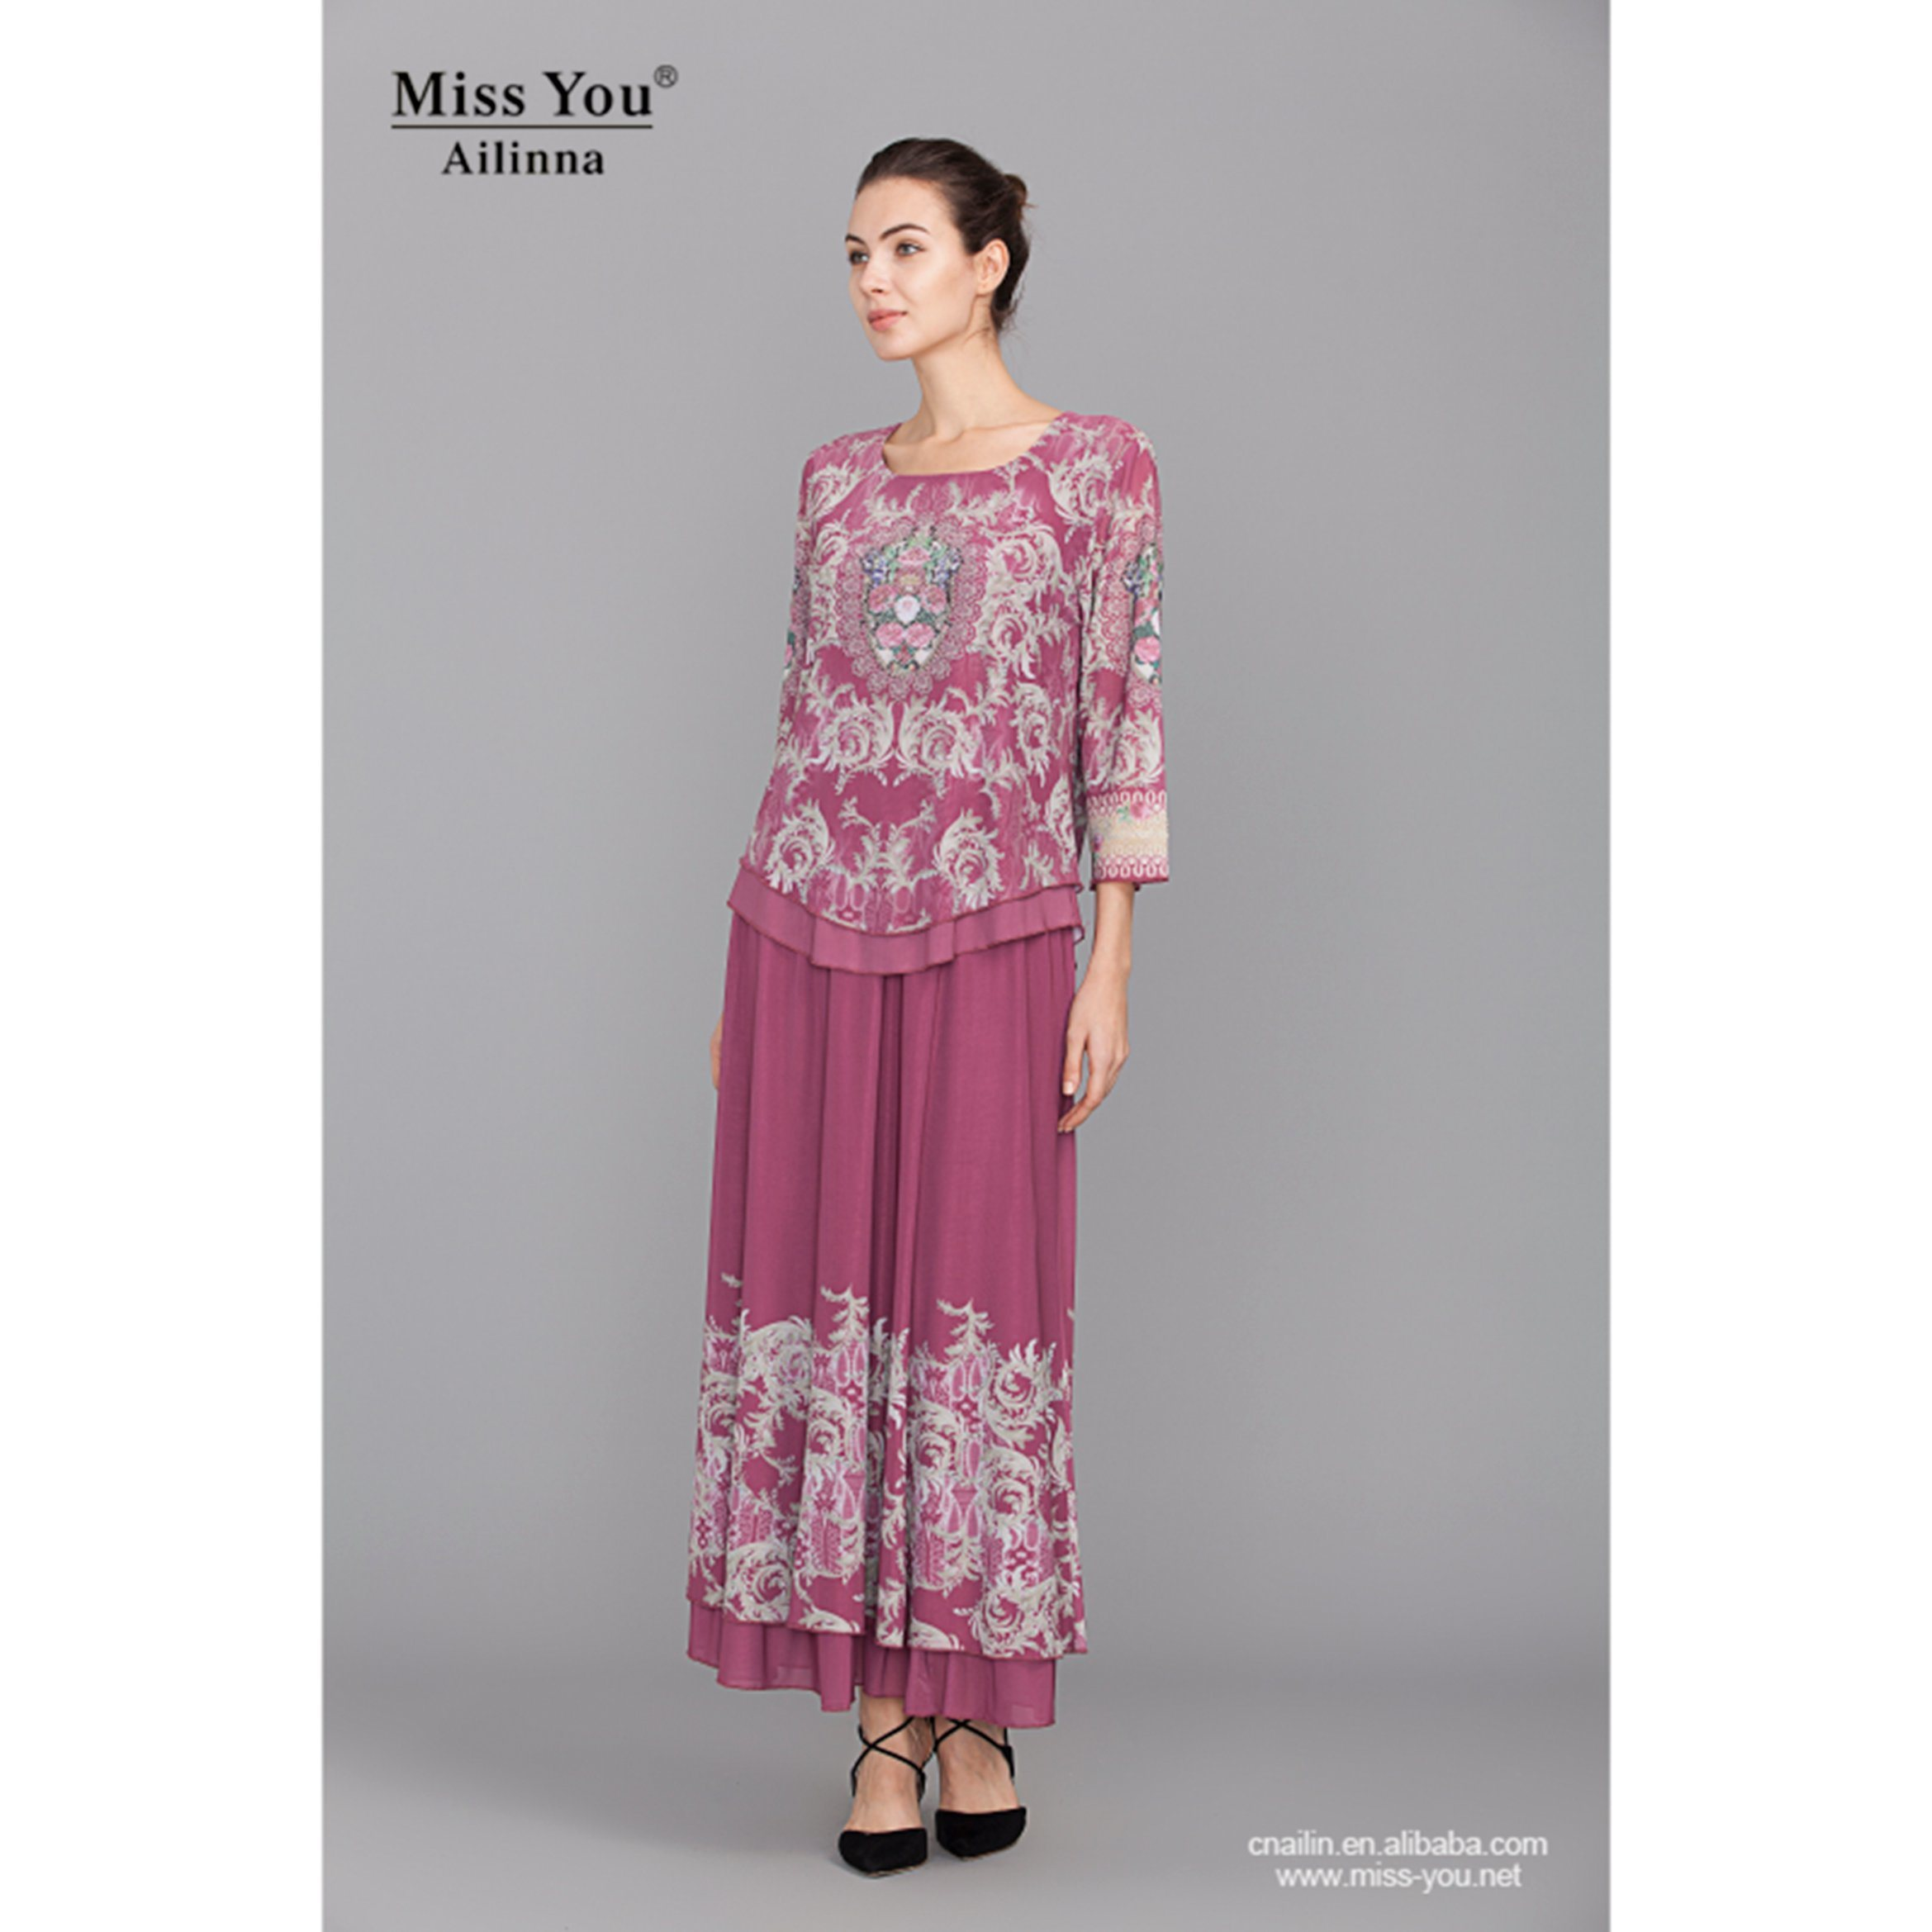 Miss You Ailinna 801842 Ladies Ethnic Long Sleeve Maxi Dress